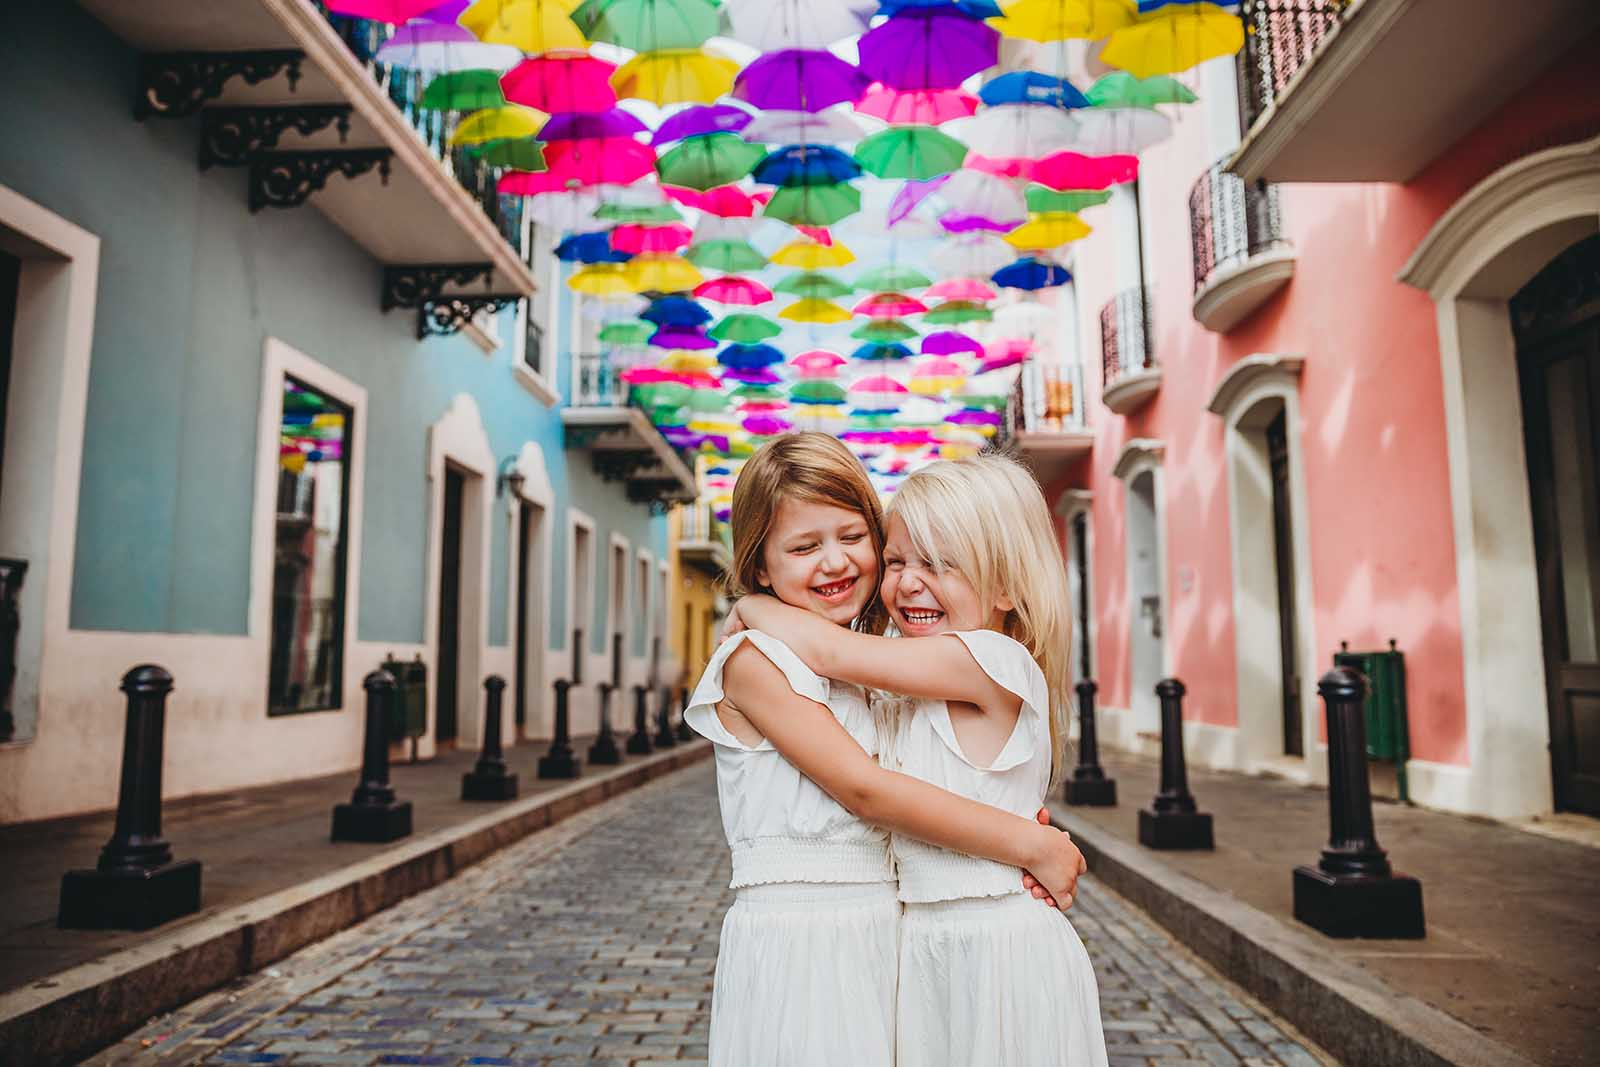 Puerto Rico street of umbrellas - how to use color in photos